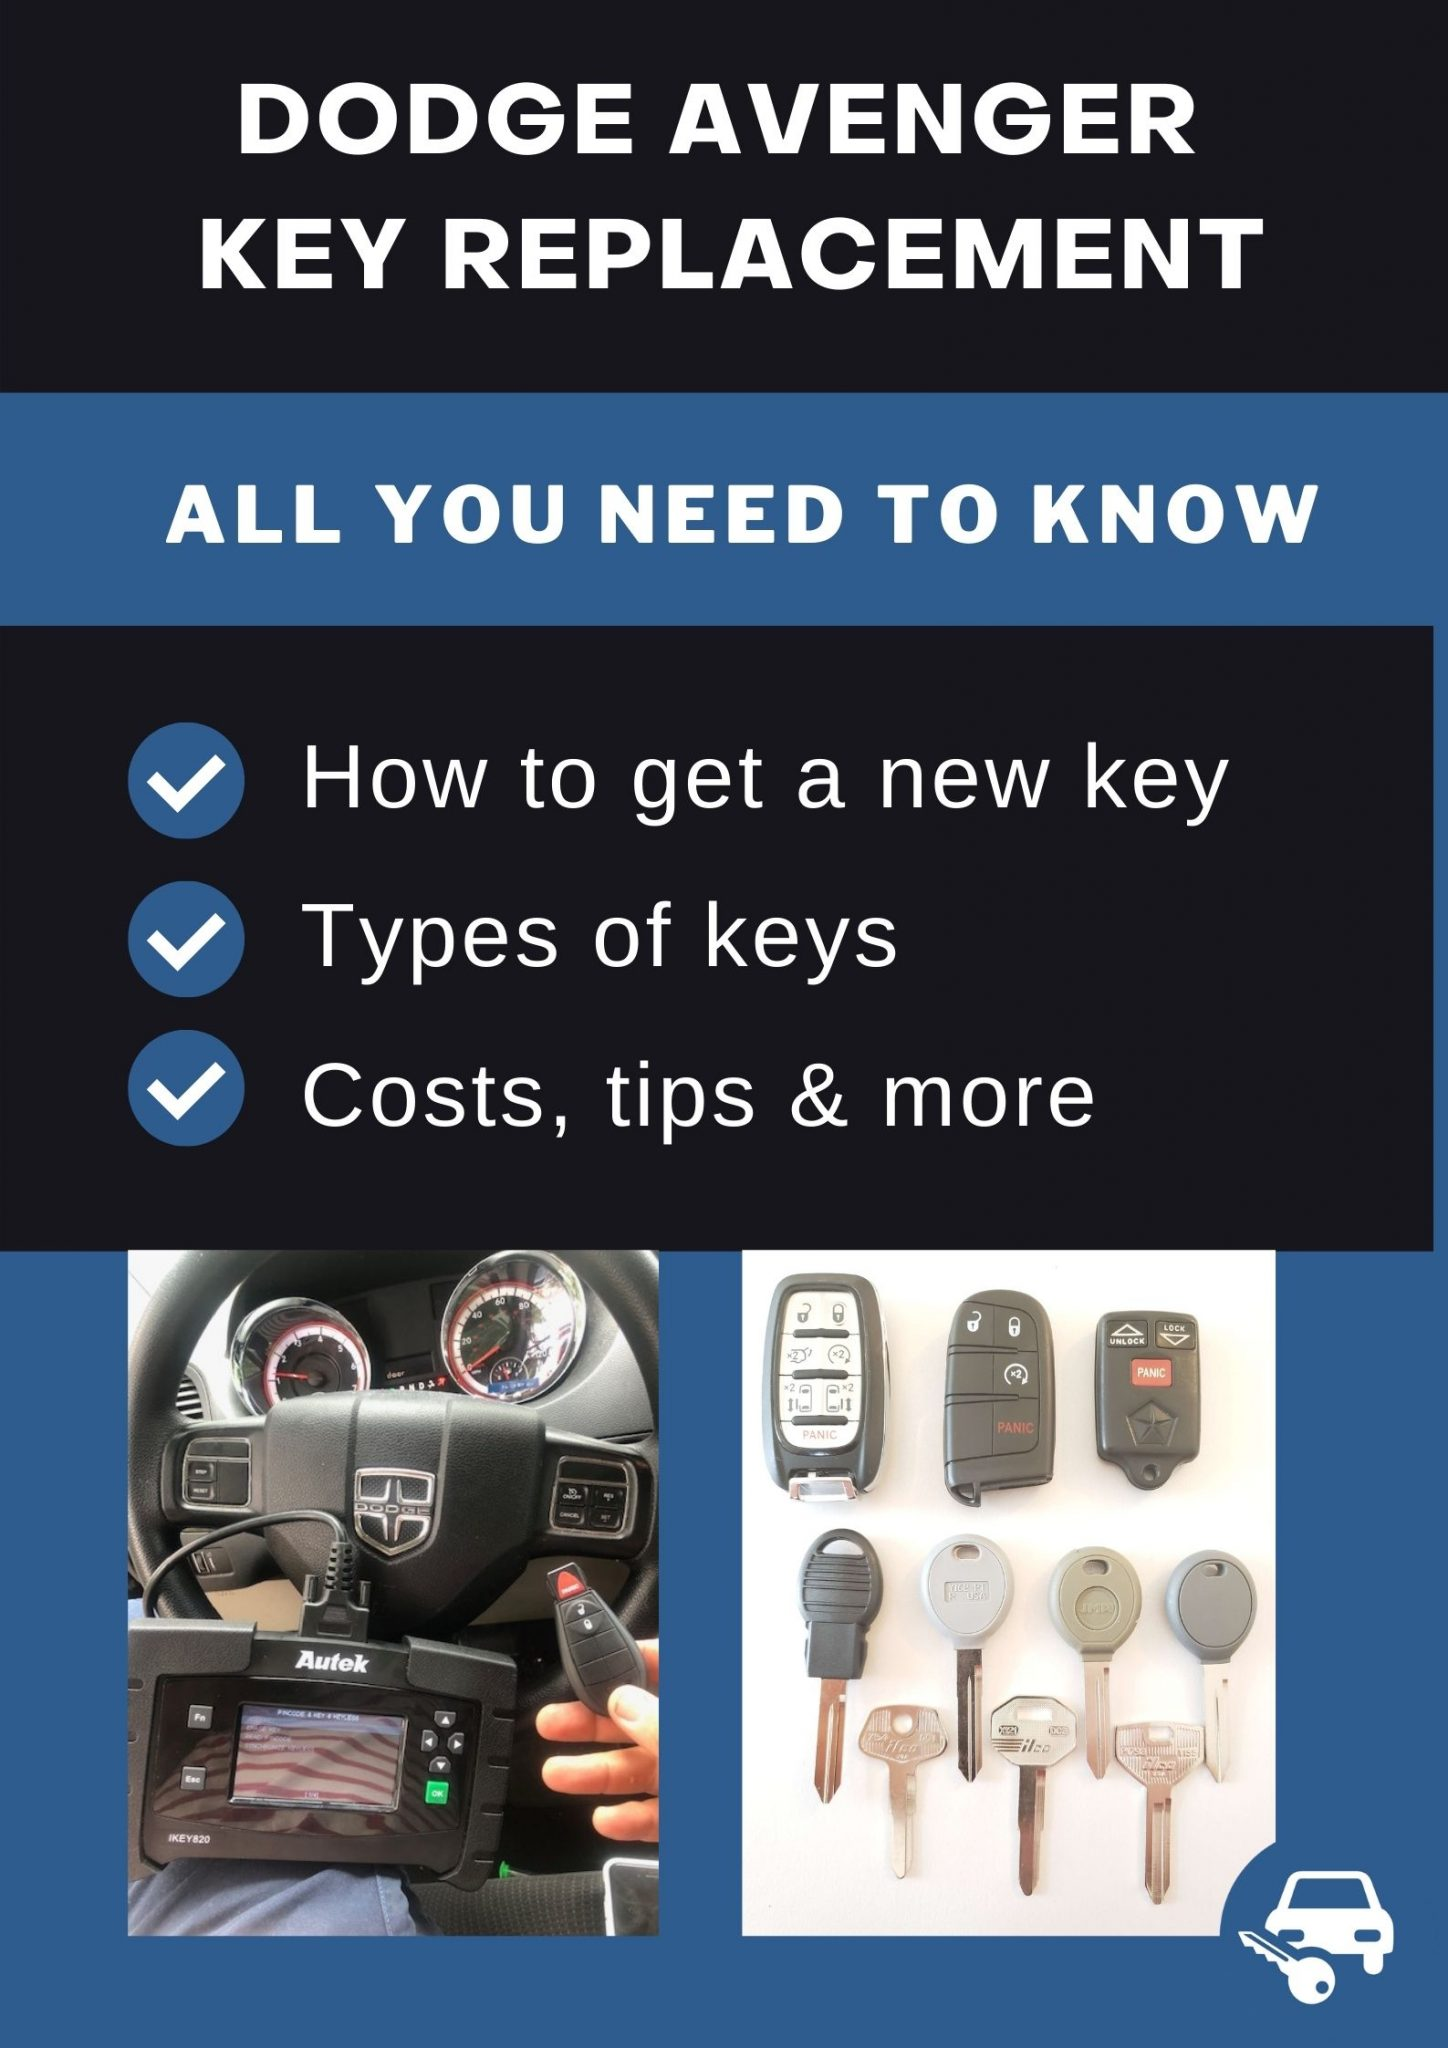 Dodge Avenger Replacement Keys What To Do Options Cost More